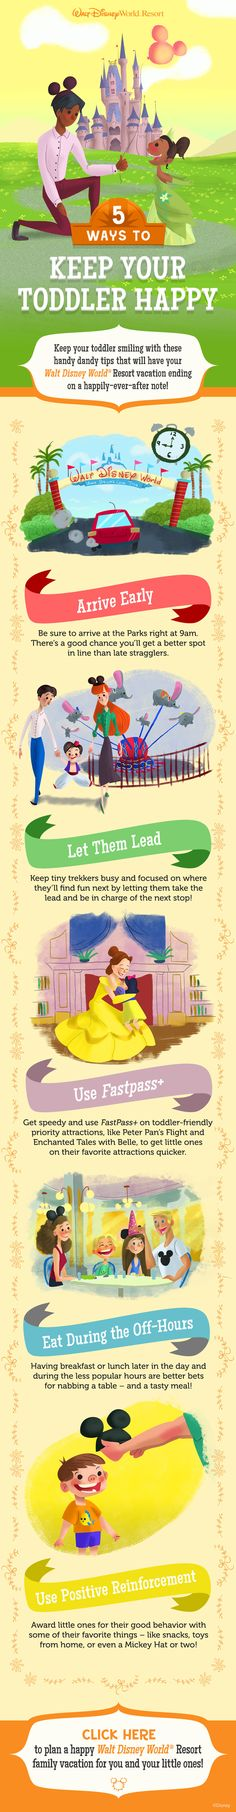 5 ways to keep your toddler happy at Walt Disney World! #vacation #parenting #tips